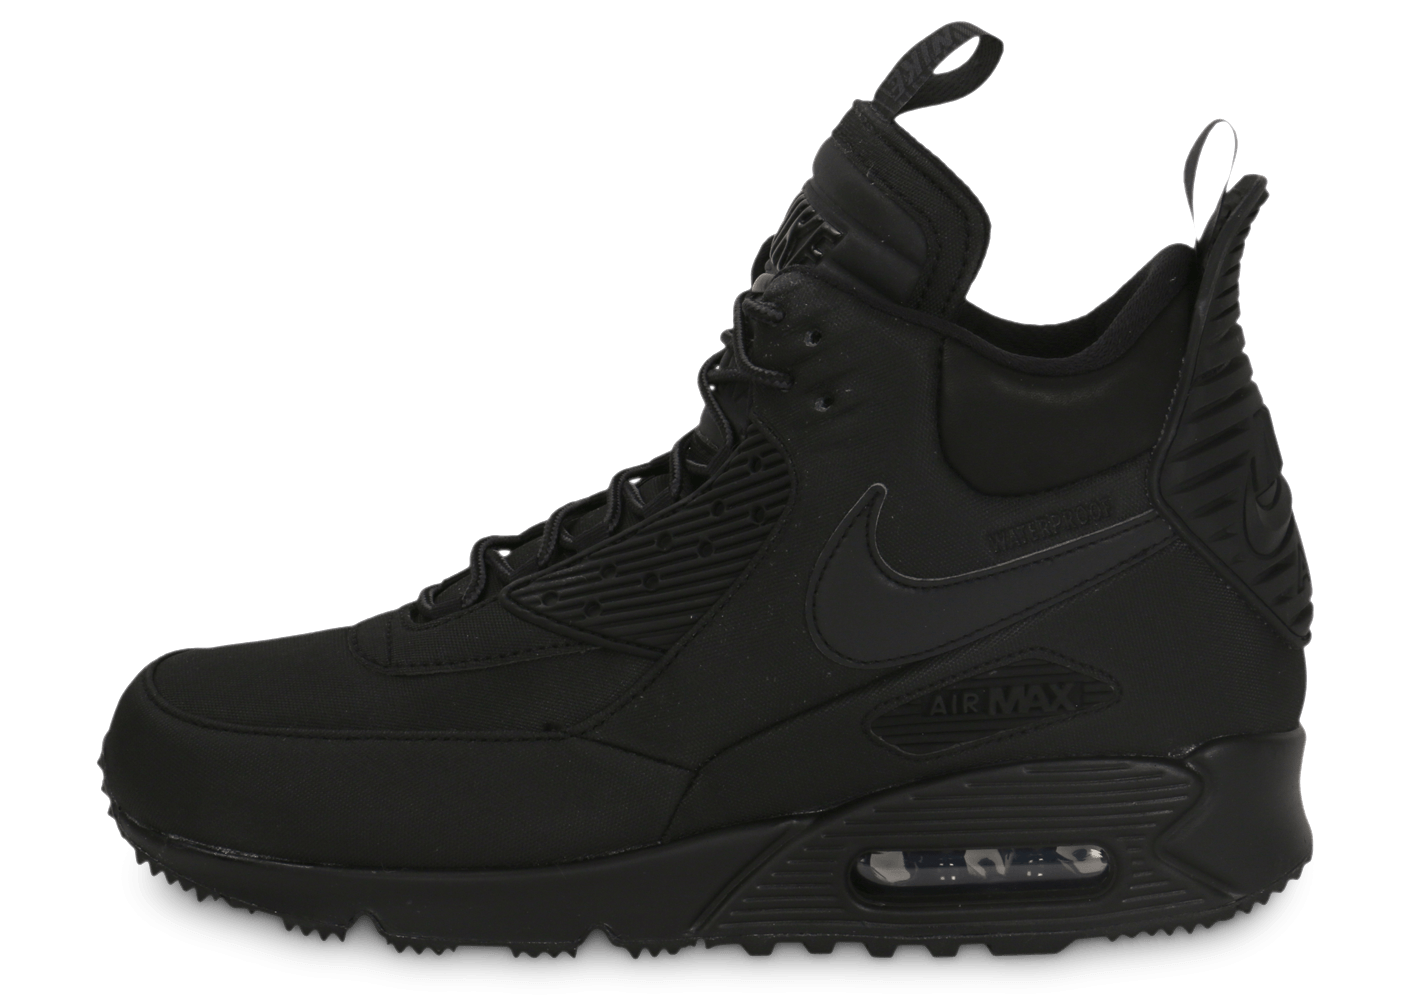 Noir Sneakerboot Nike Air Winter 90 Zgqupsmv Max f6gYby7